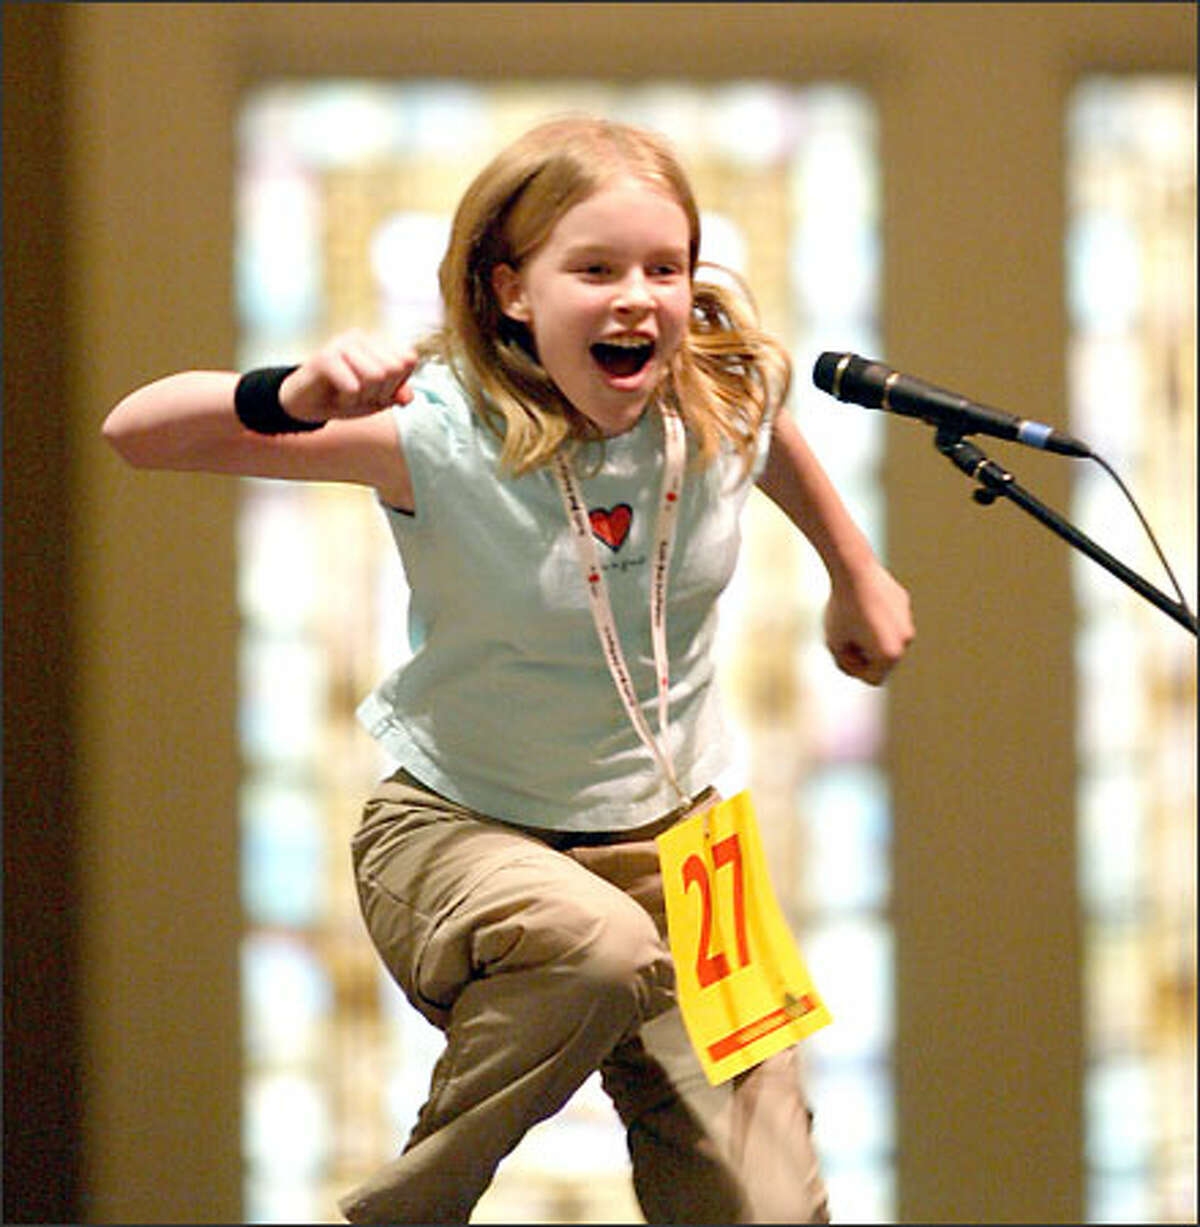 Sixth-grader Claire Nieman celebrates after spelling the winning word at the Regional Spelling Bee at Town Hall in Seattle.